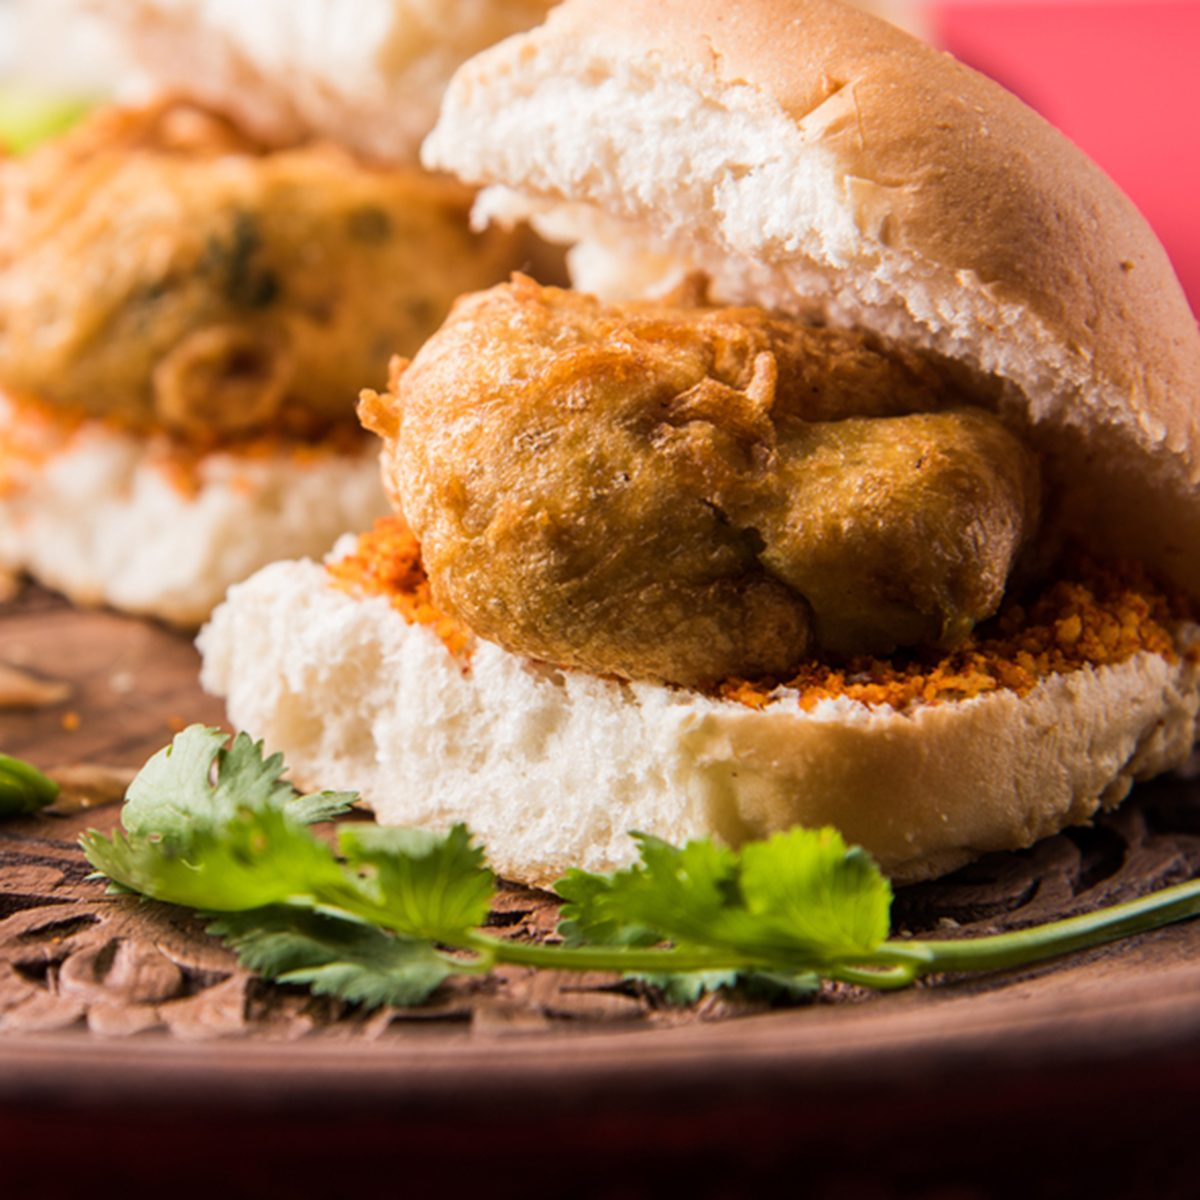 Vada Pav OR Wada Pao is Indian OR Desi Burger, is a roadside fast food dish from Maharashtra.